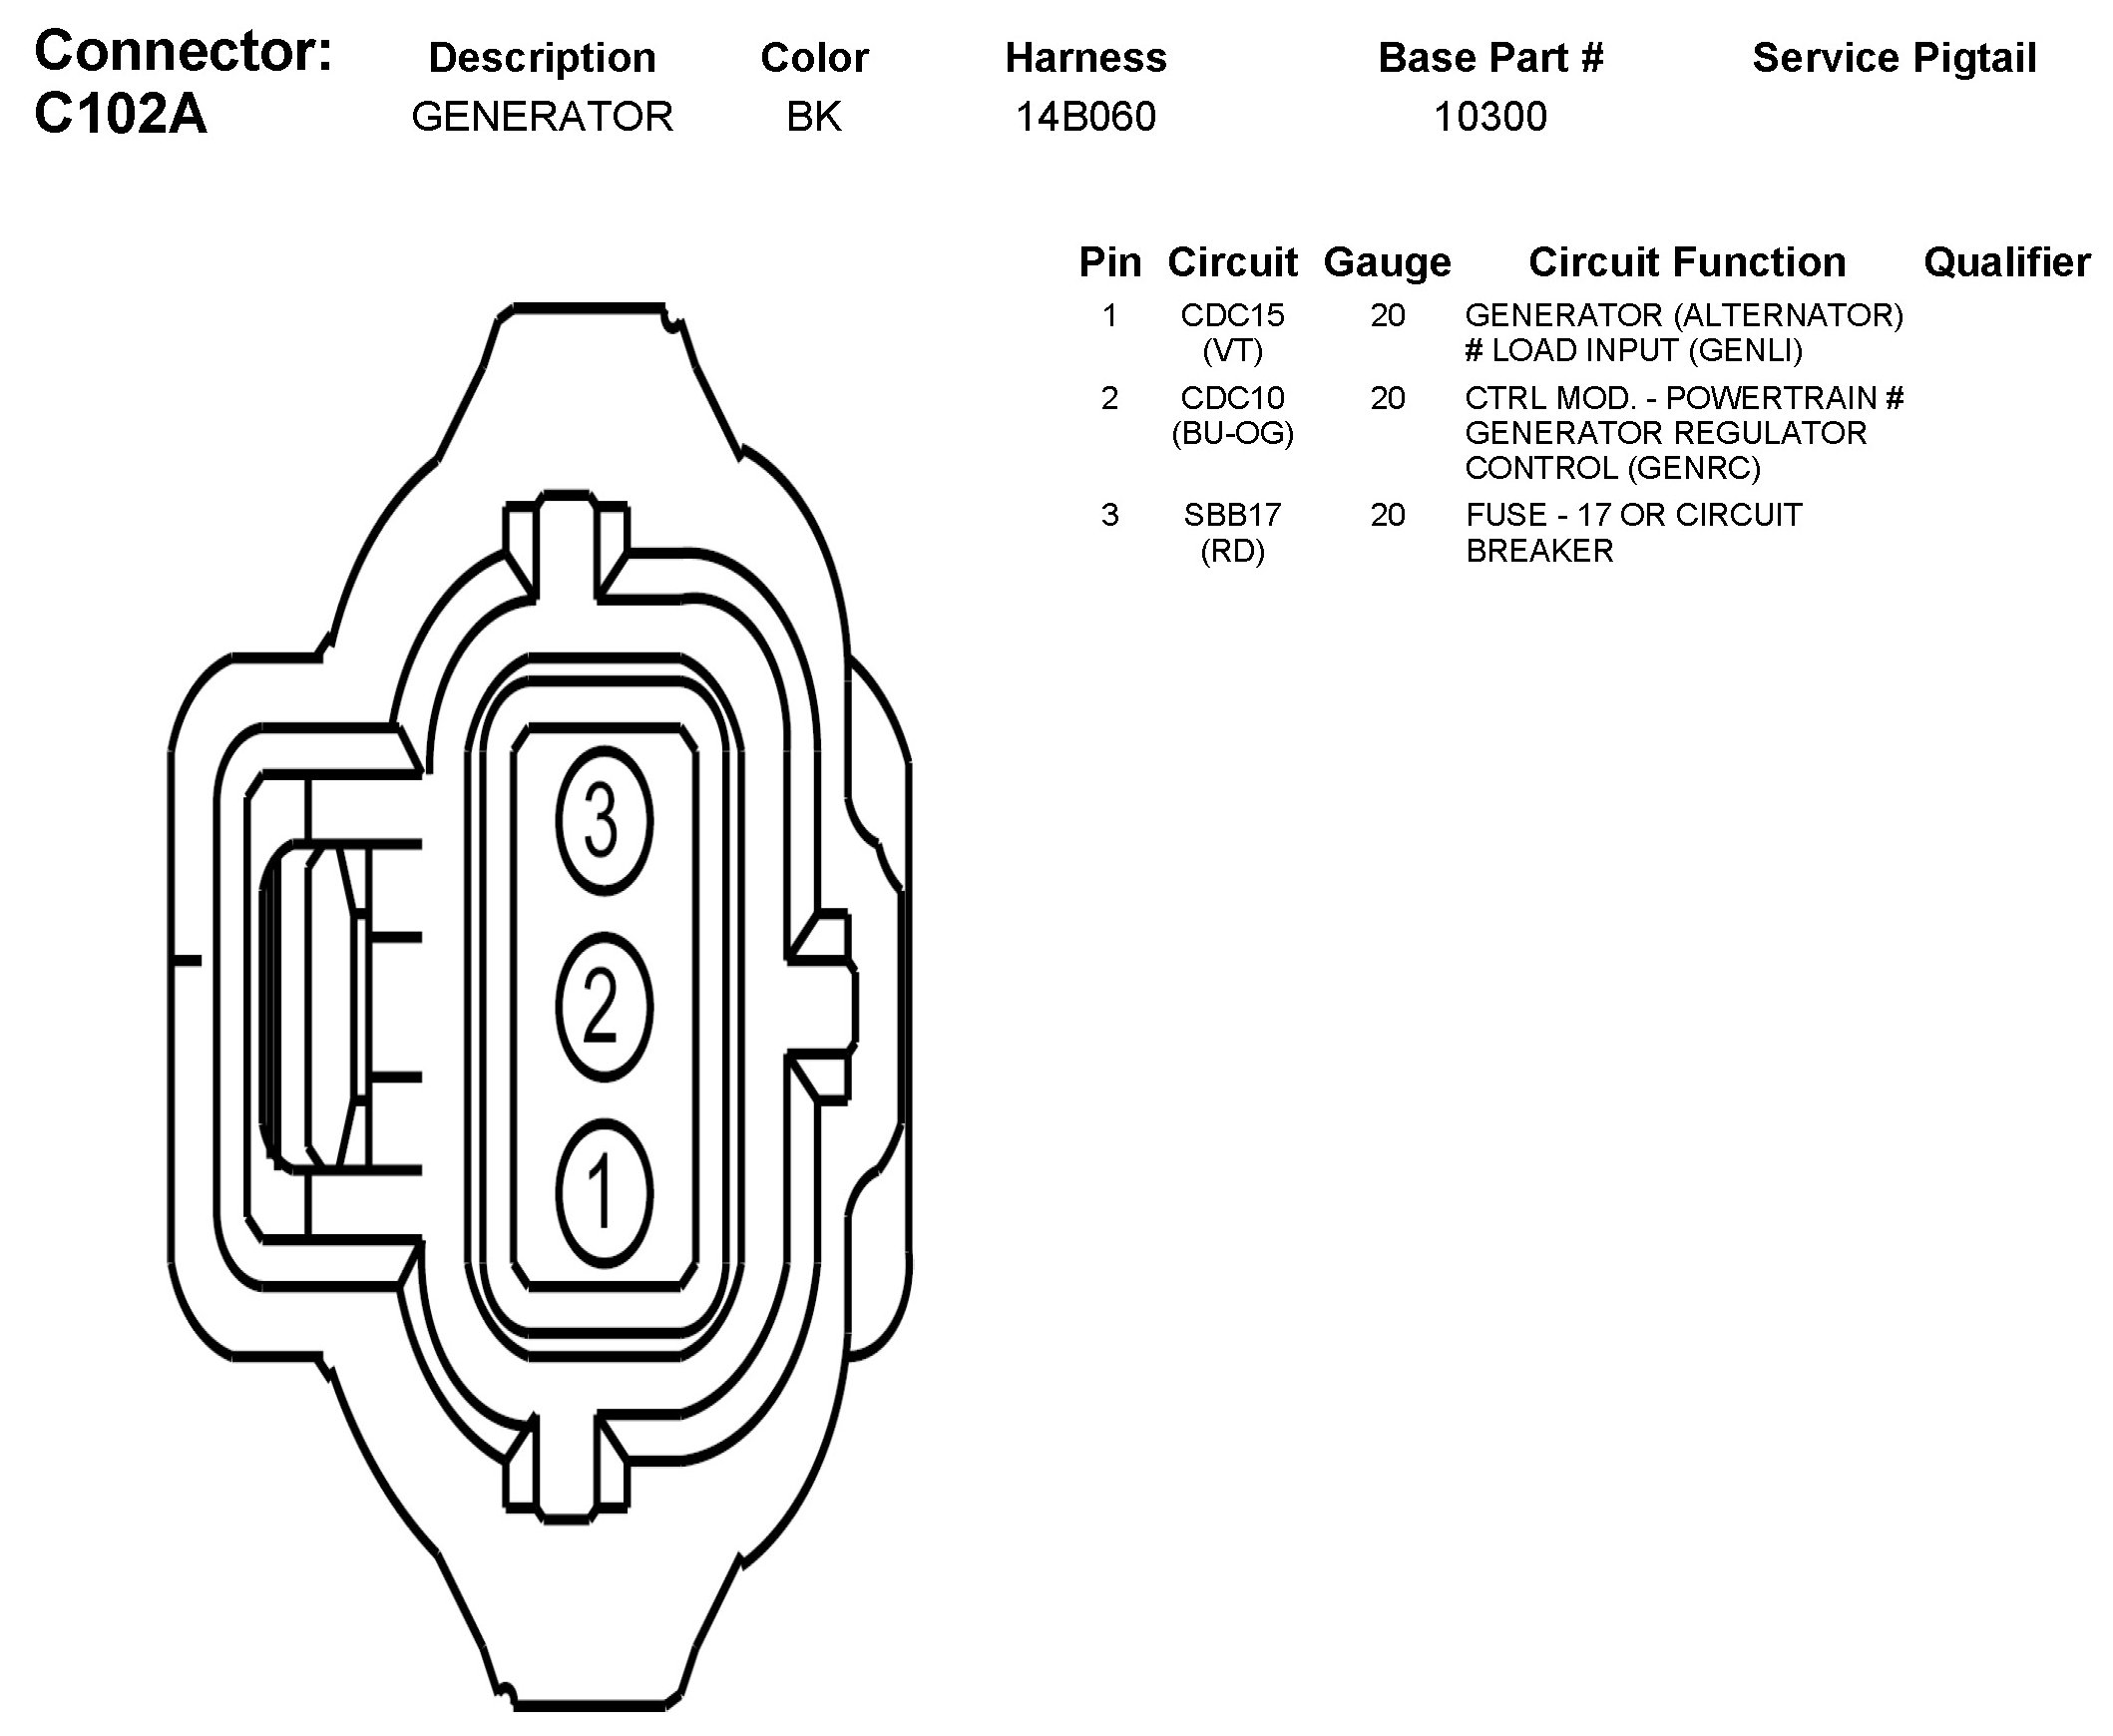 4 Wire Gm Alternator Connector Schematics Wiring Diagrams Lt1 2006 Mazda 3 Fusion Two Diagram Chevy